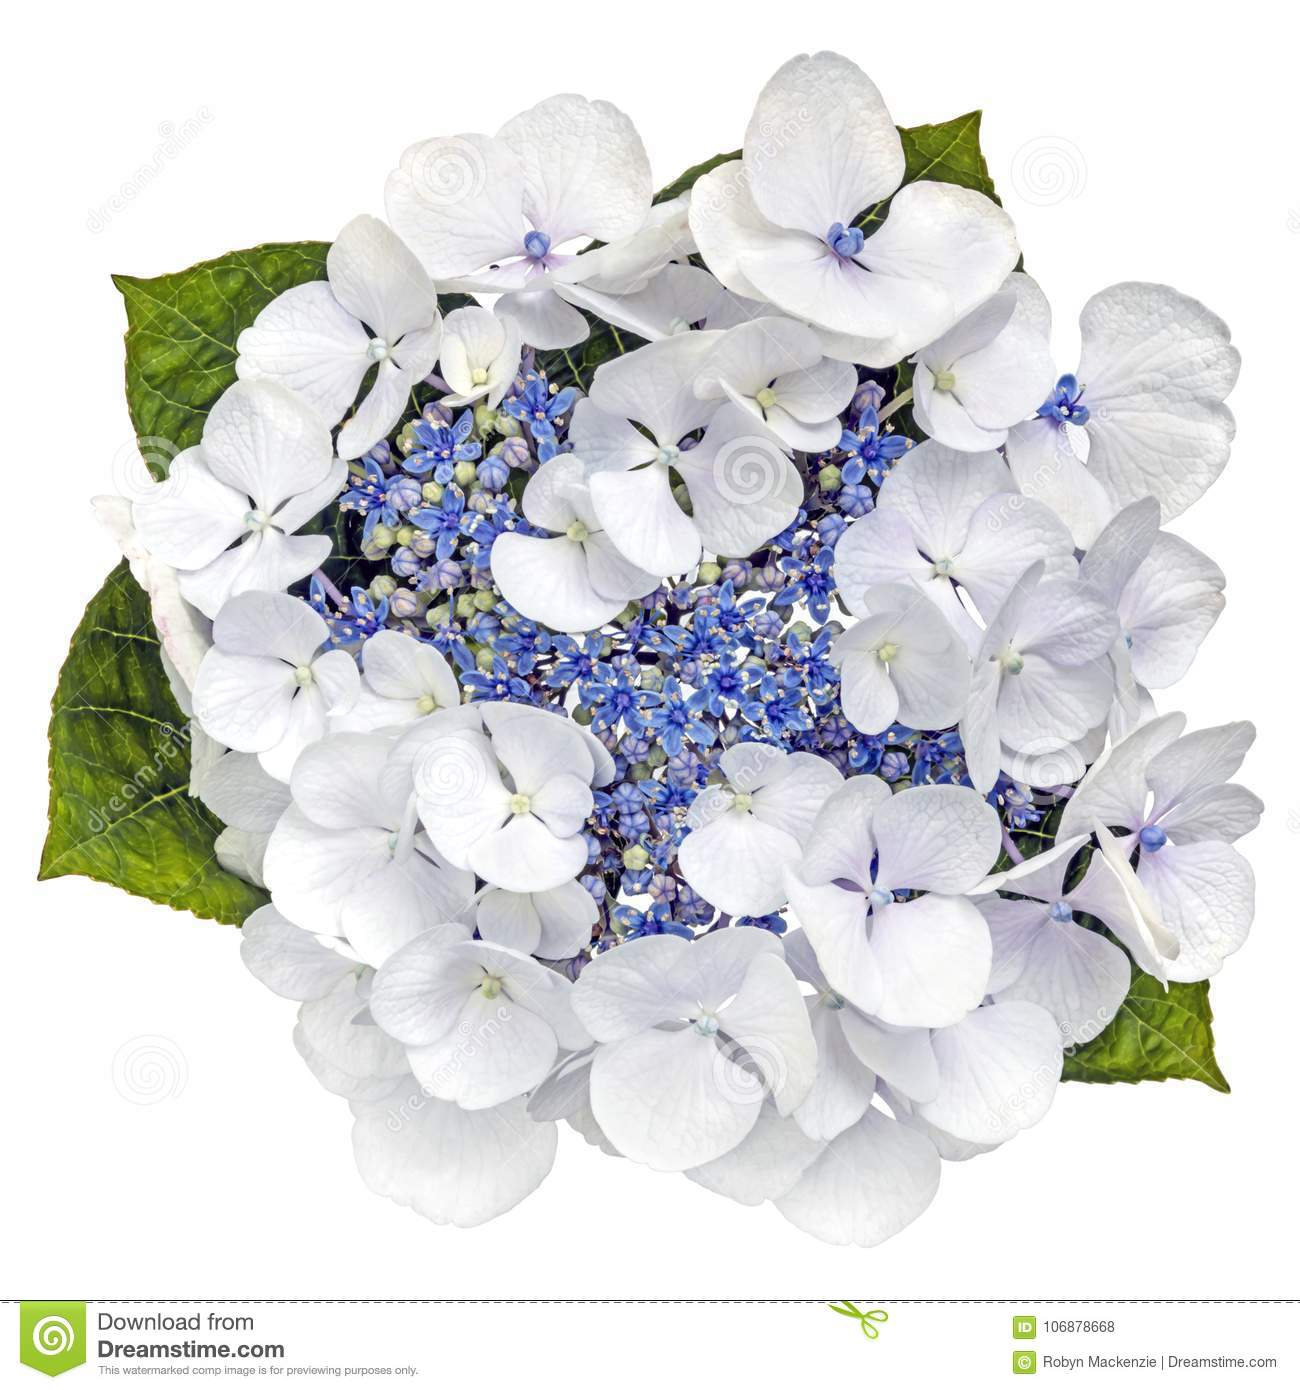 Blue Lacecap Hydrangea Flower Top View Isolated on White